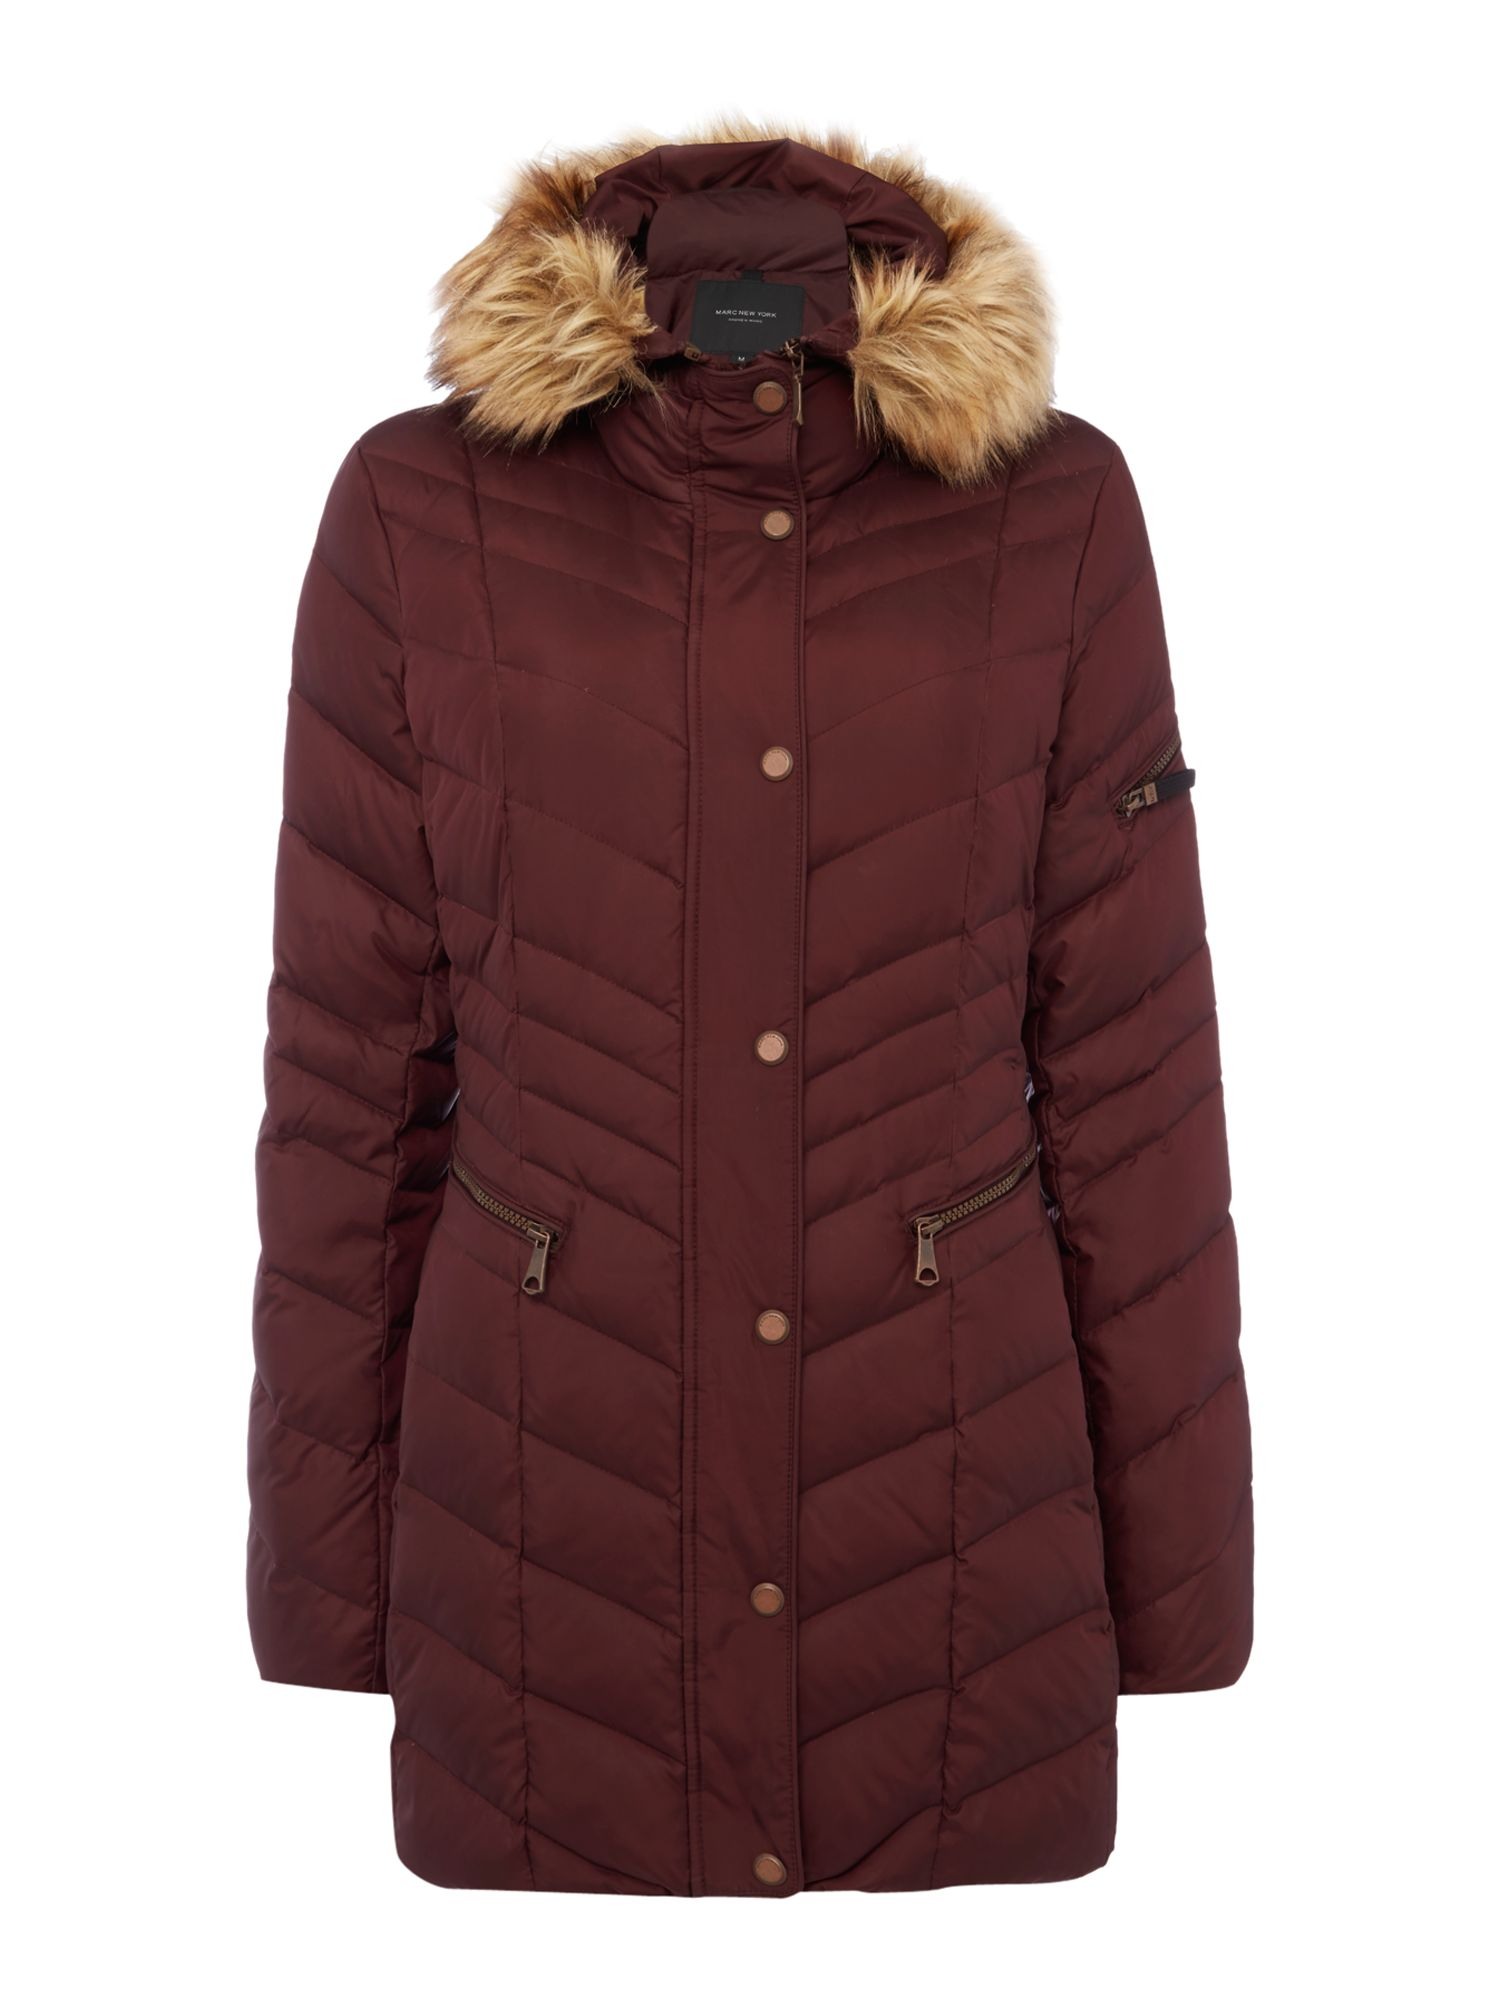 Andrew Marc Padded Coat with Faux Fur Hood Dark Red